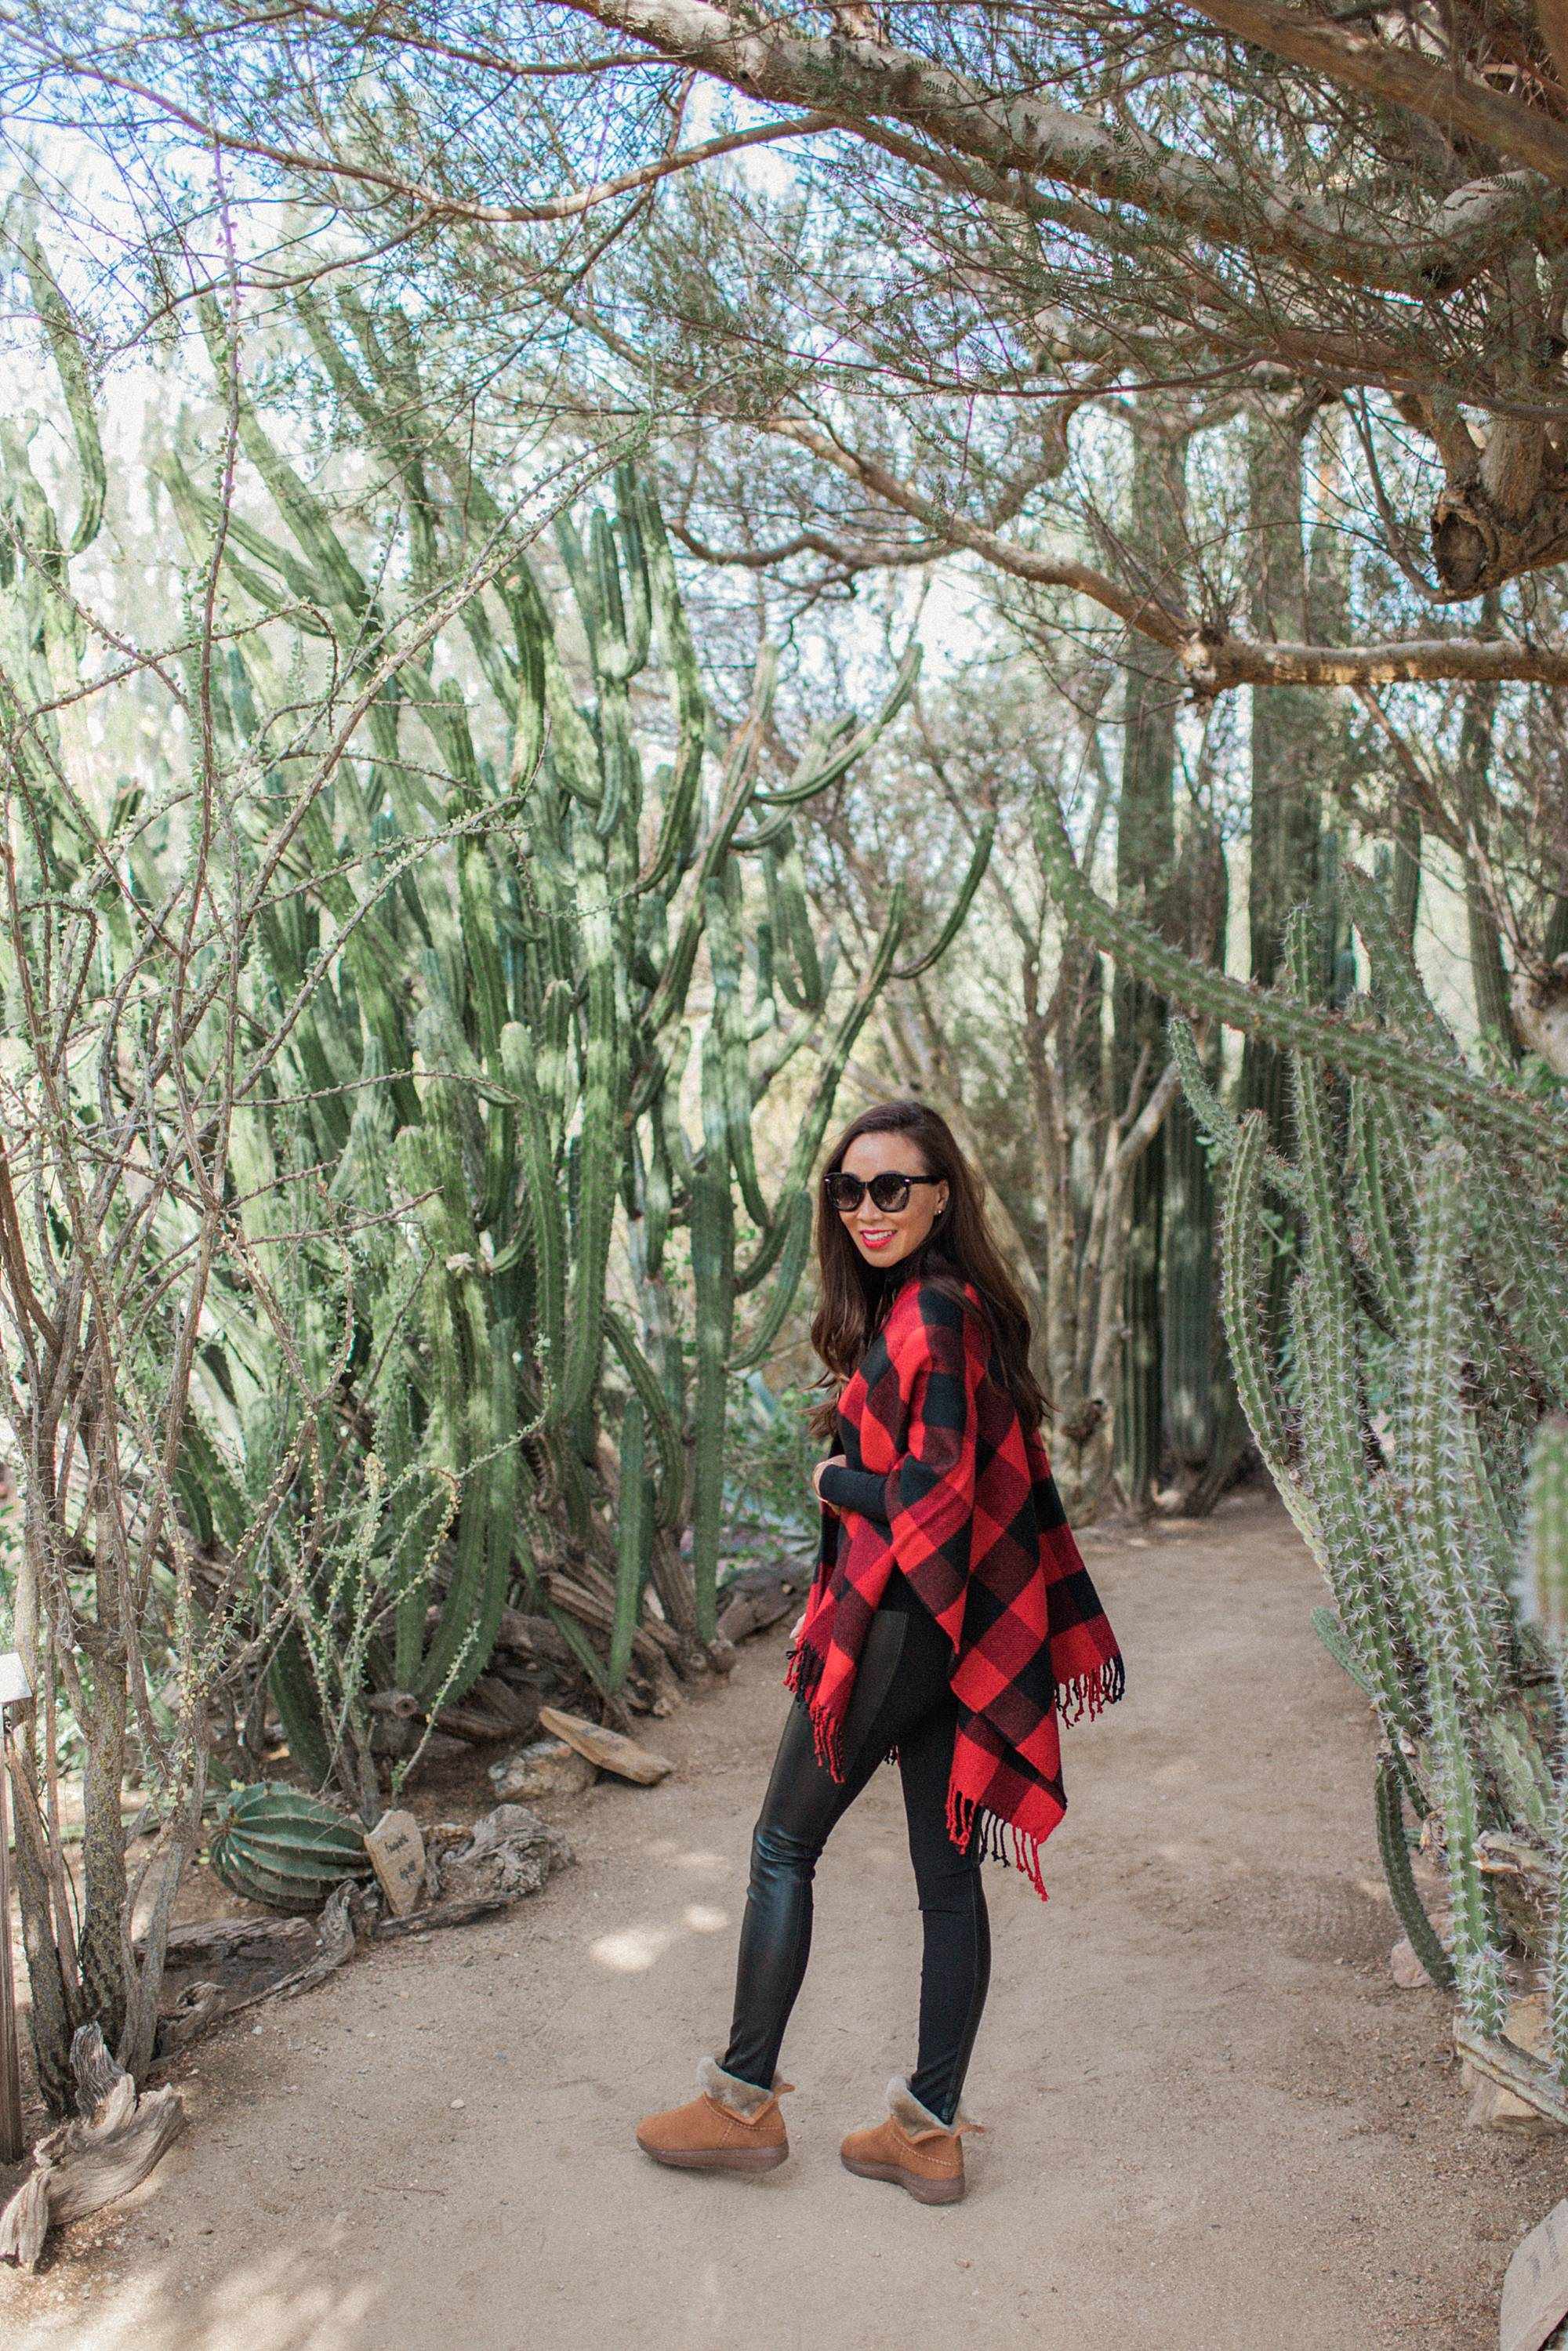 Moorten Botanical Garden Palm Springs cactus garden outdoor buffalo check poncho Abercrombie on phoenix travel and lifestyle blogger Diana Elizabeth wearing cozy shearling boots by FitFlop #cactusgarden #palmsprings